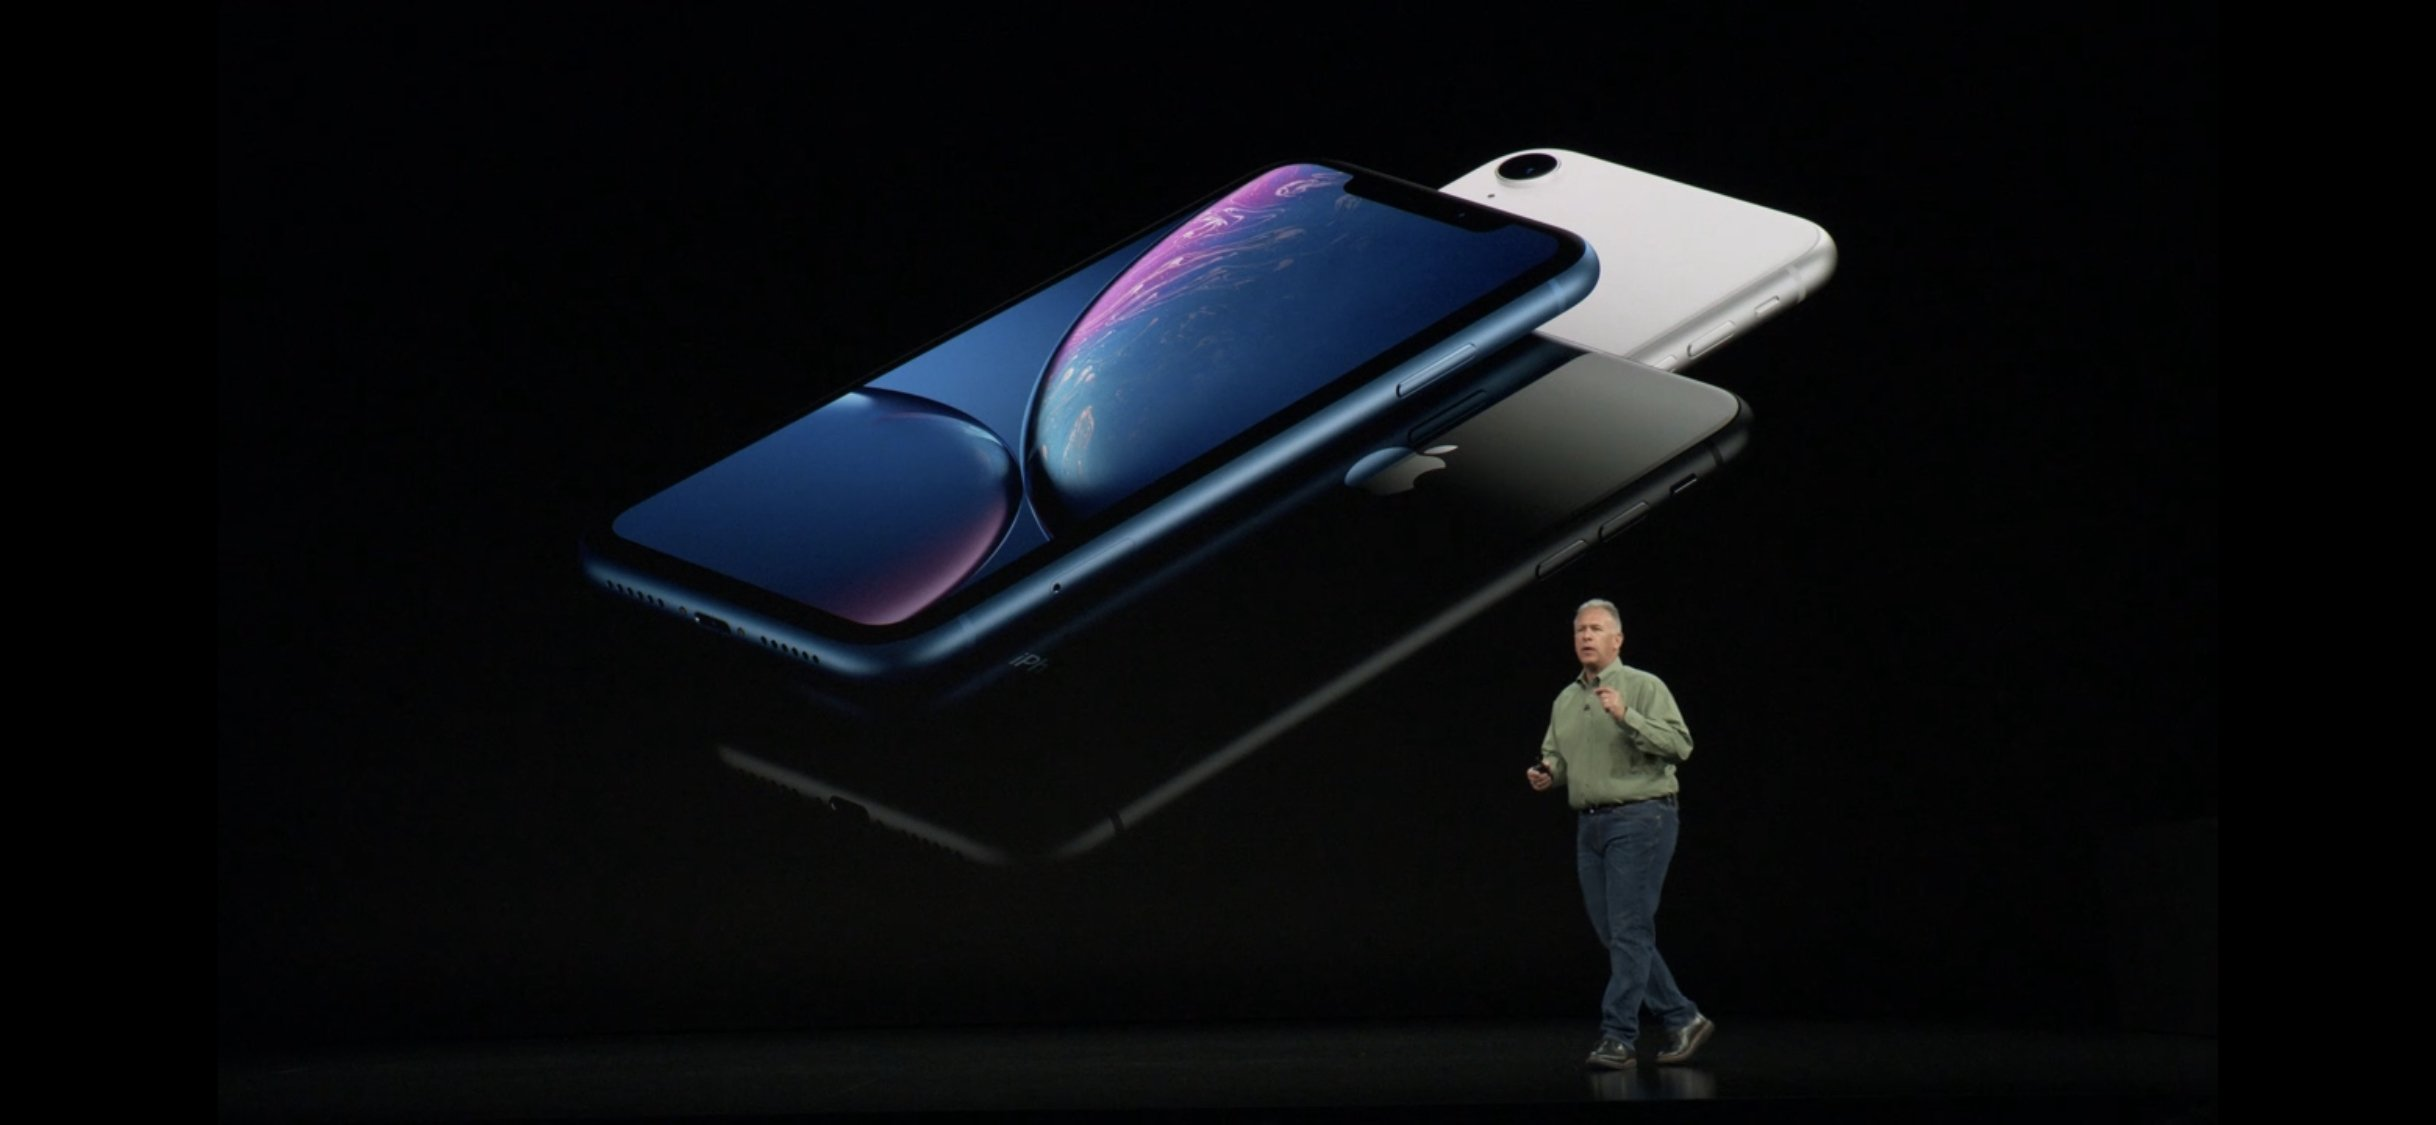 official photos 9753b 98ab9 Apple unveils iPhone Xr, featuring LCD Liquid Retina display | Shacknews